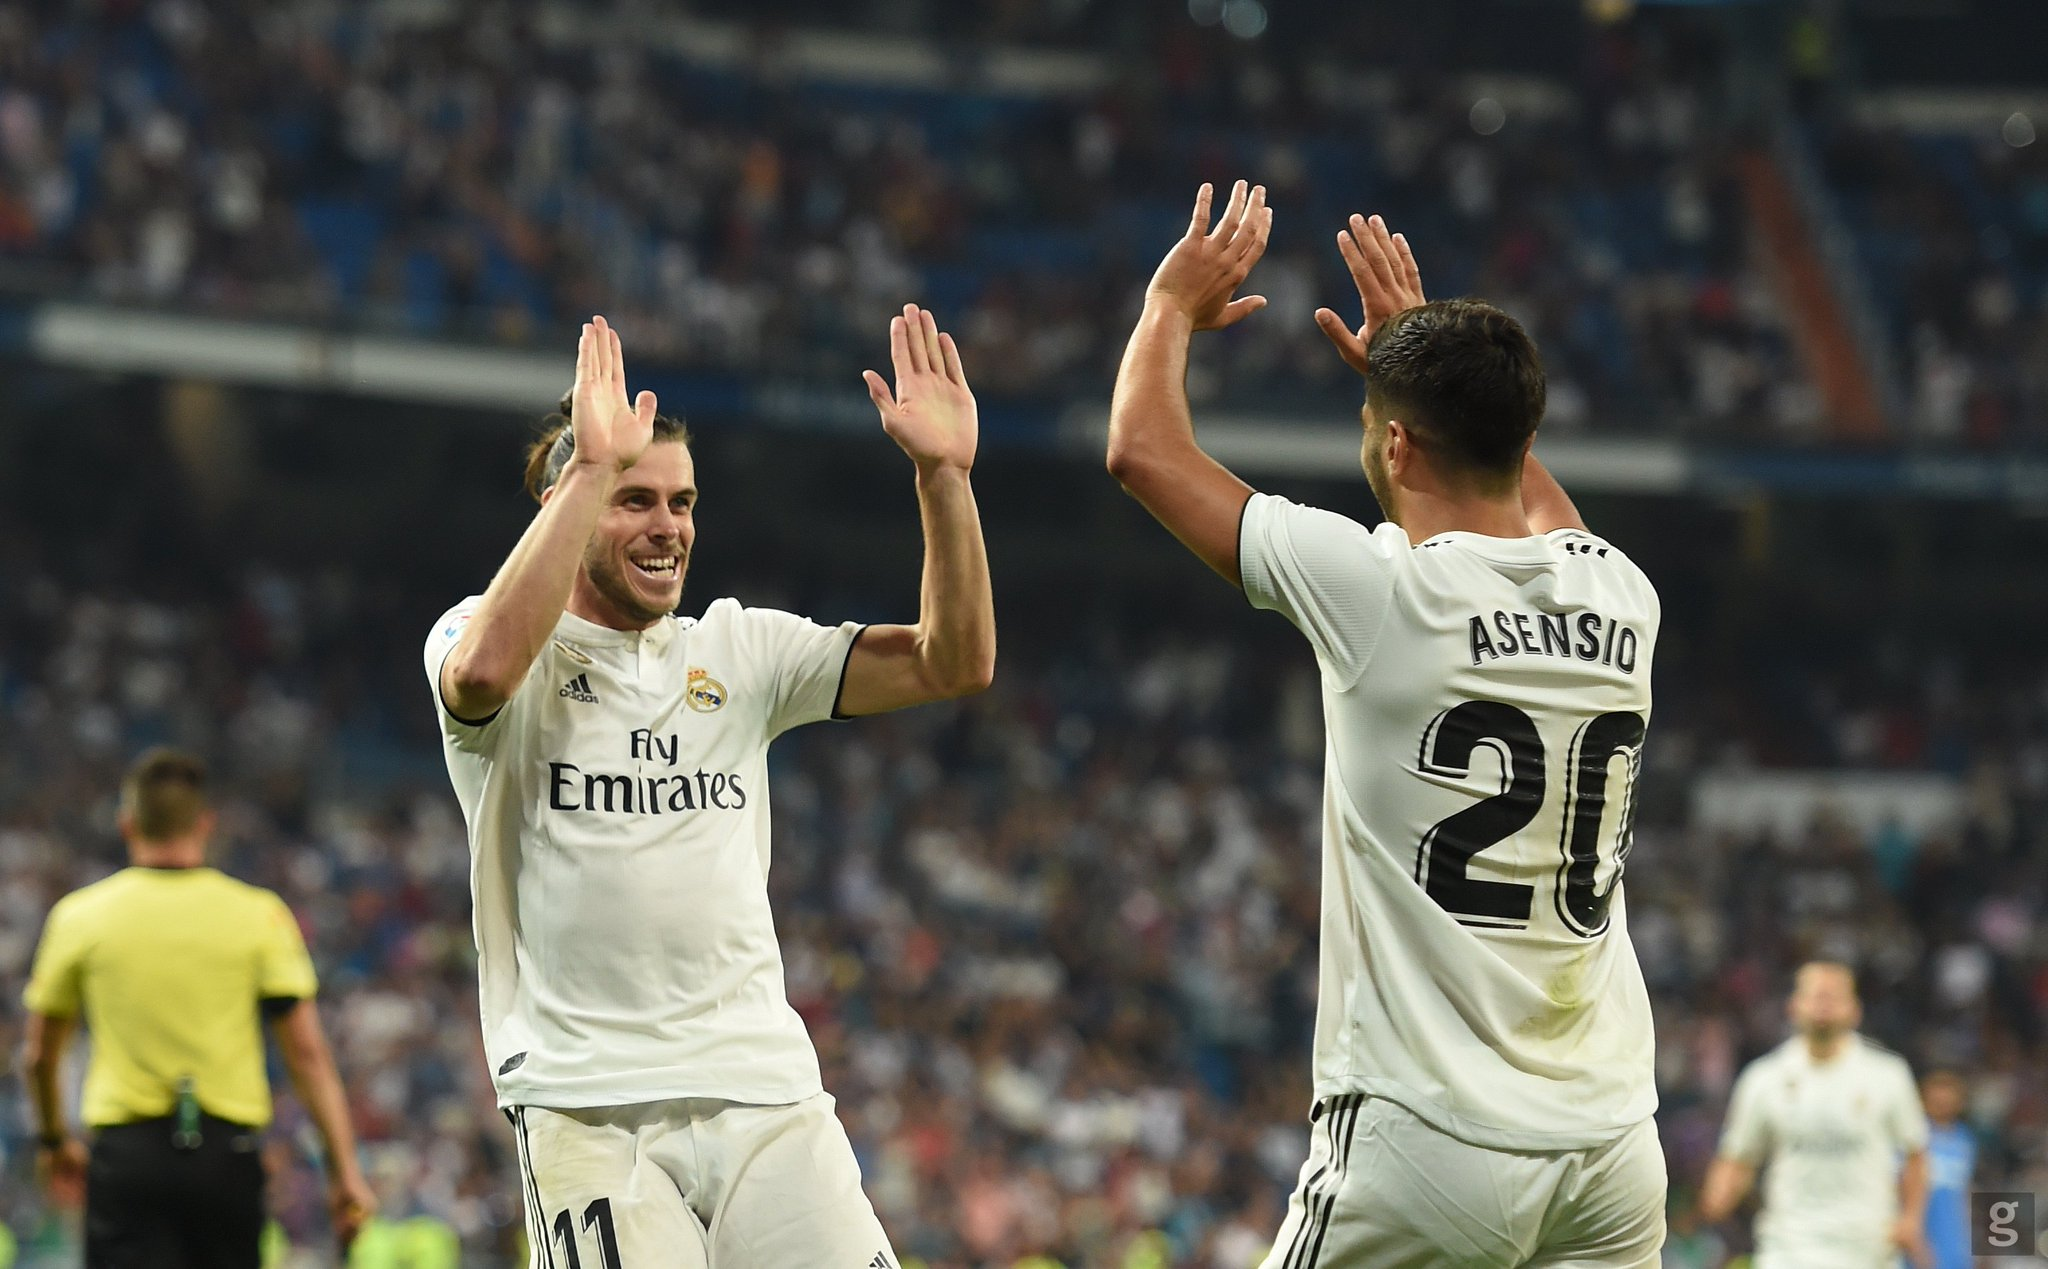 Real Madrid players to wear shirts with message of support